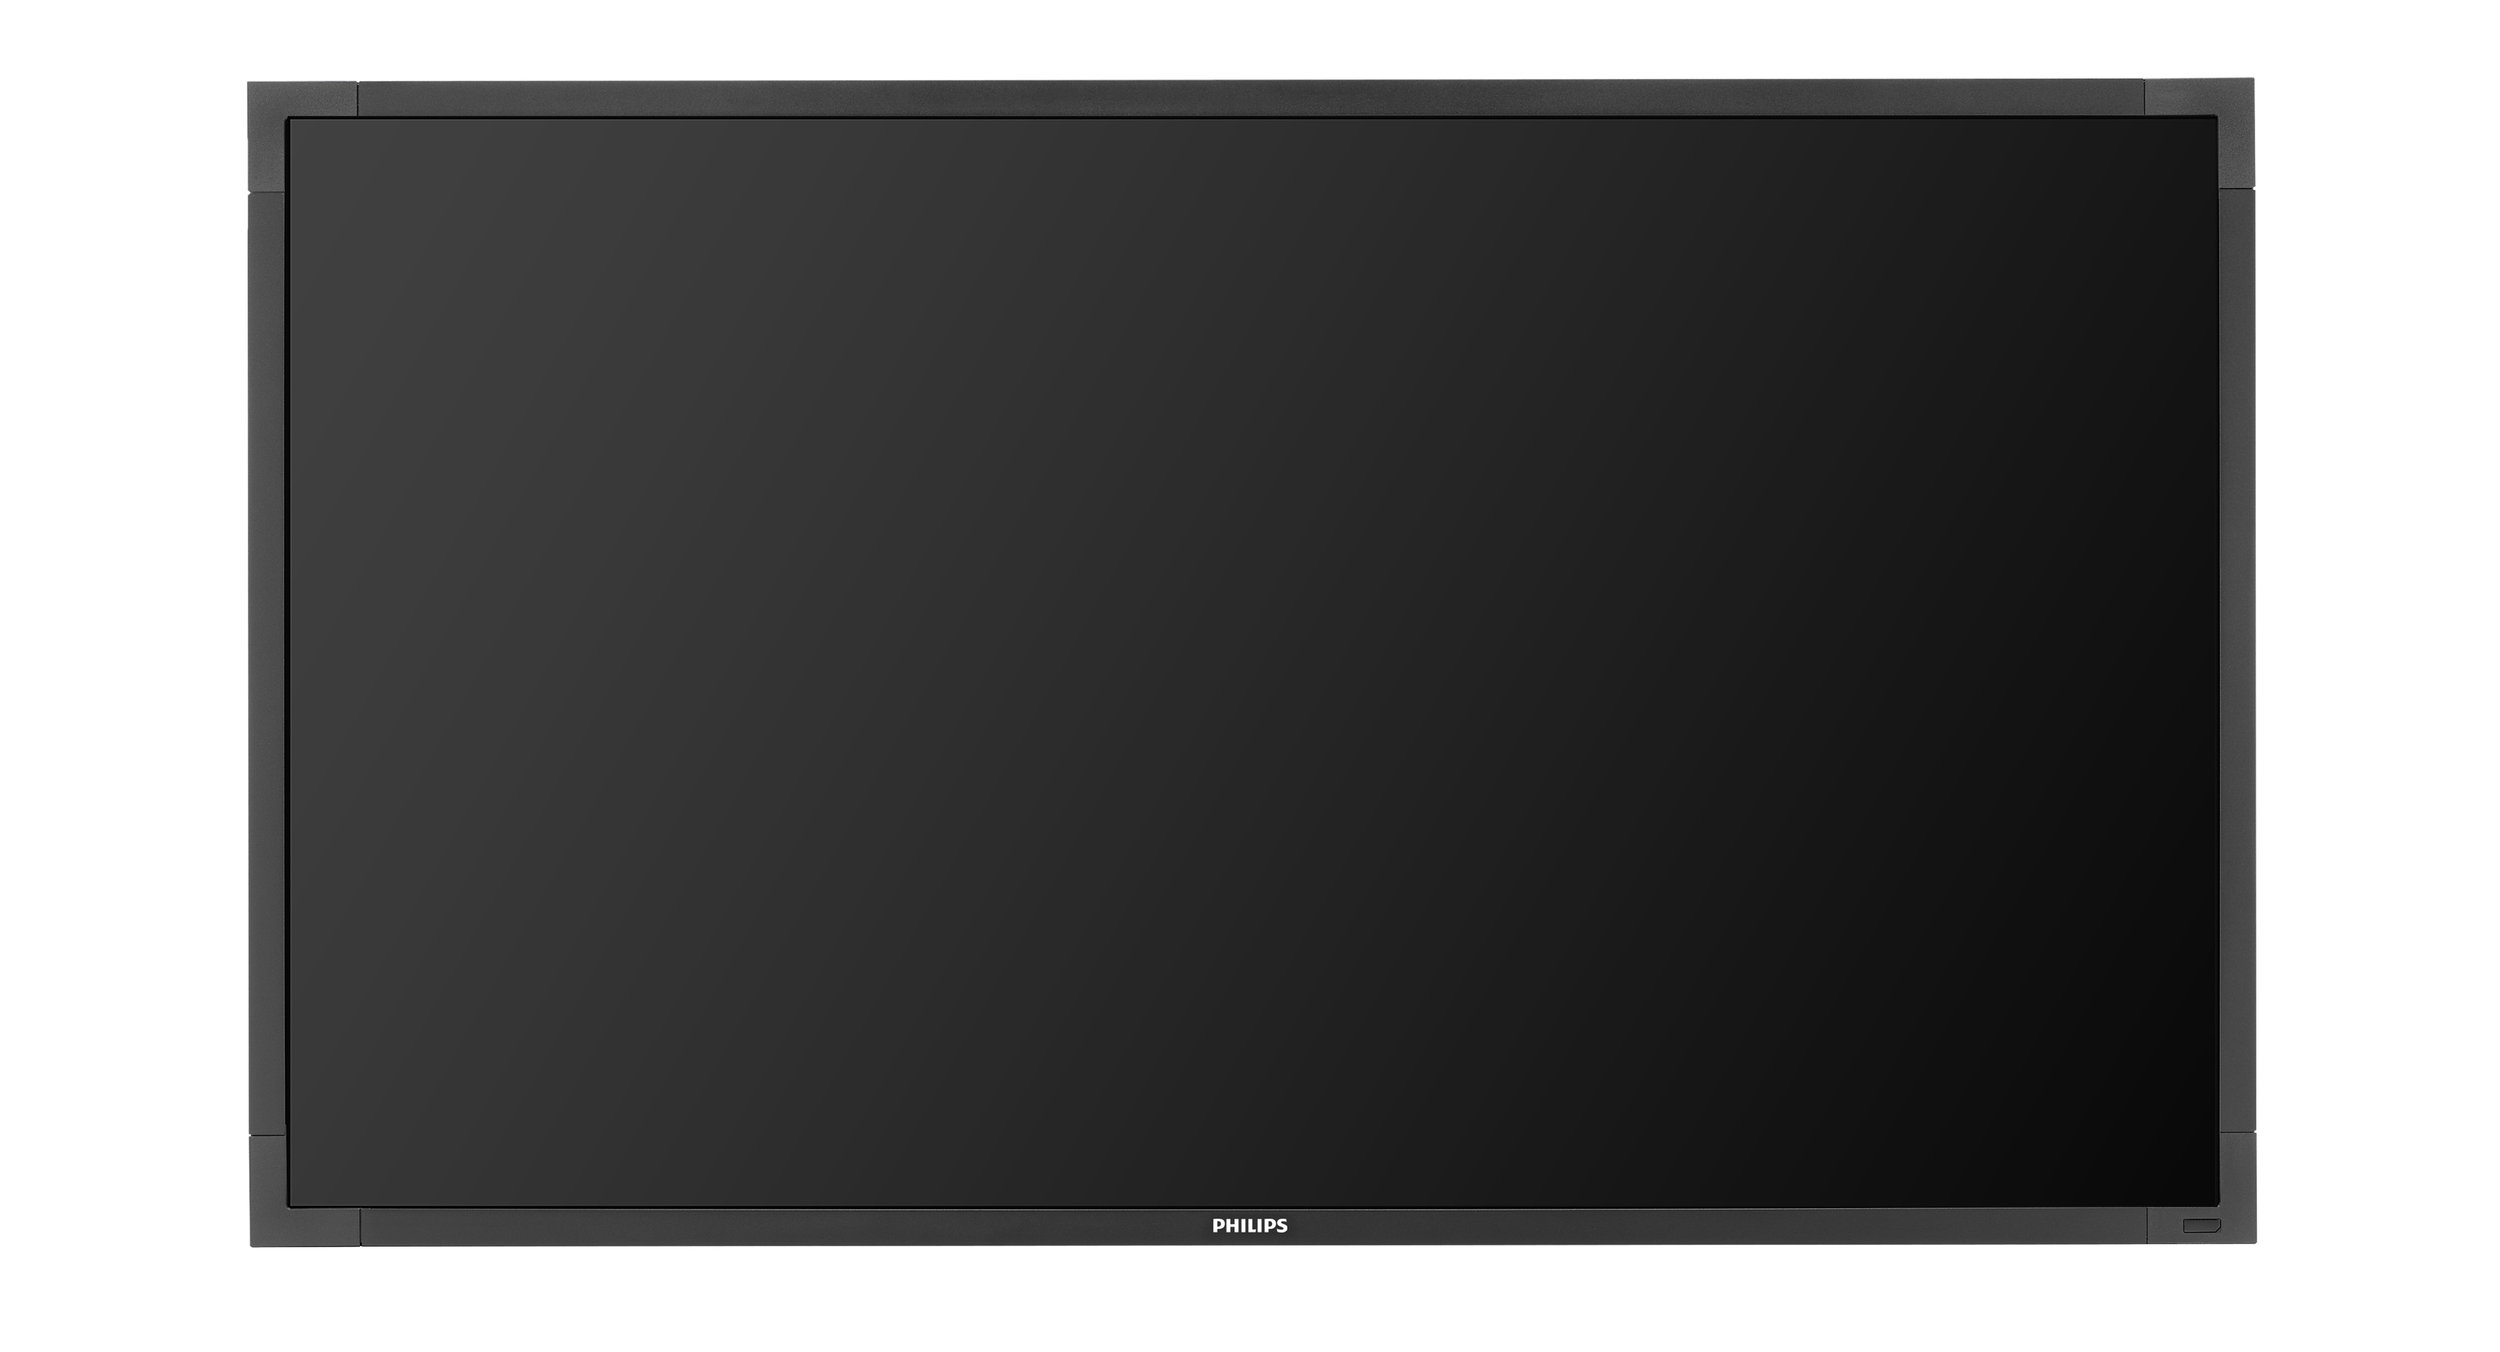 Philips-43BDL3051T-front-blank.jpg